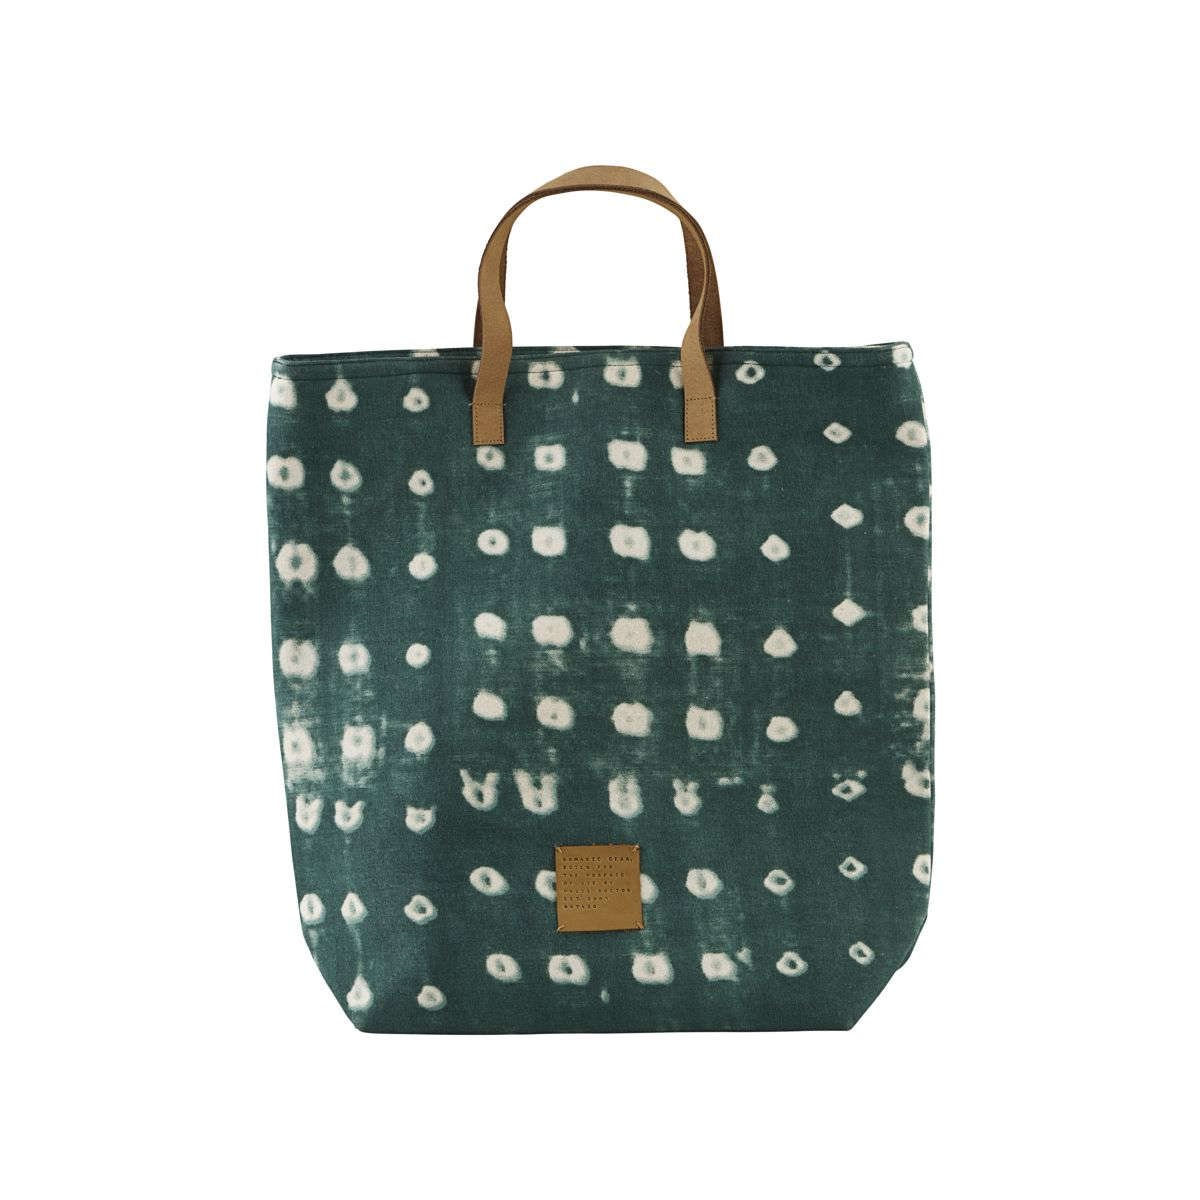 f3a123f3ebded Torba Green Dots - Sklep WhiteHouseDesign.pl